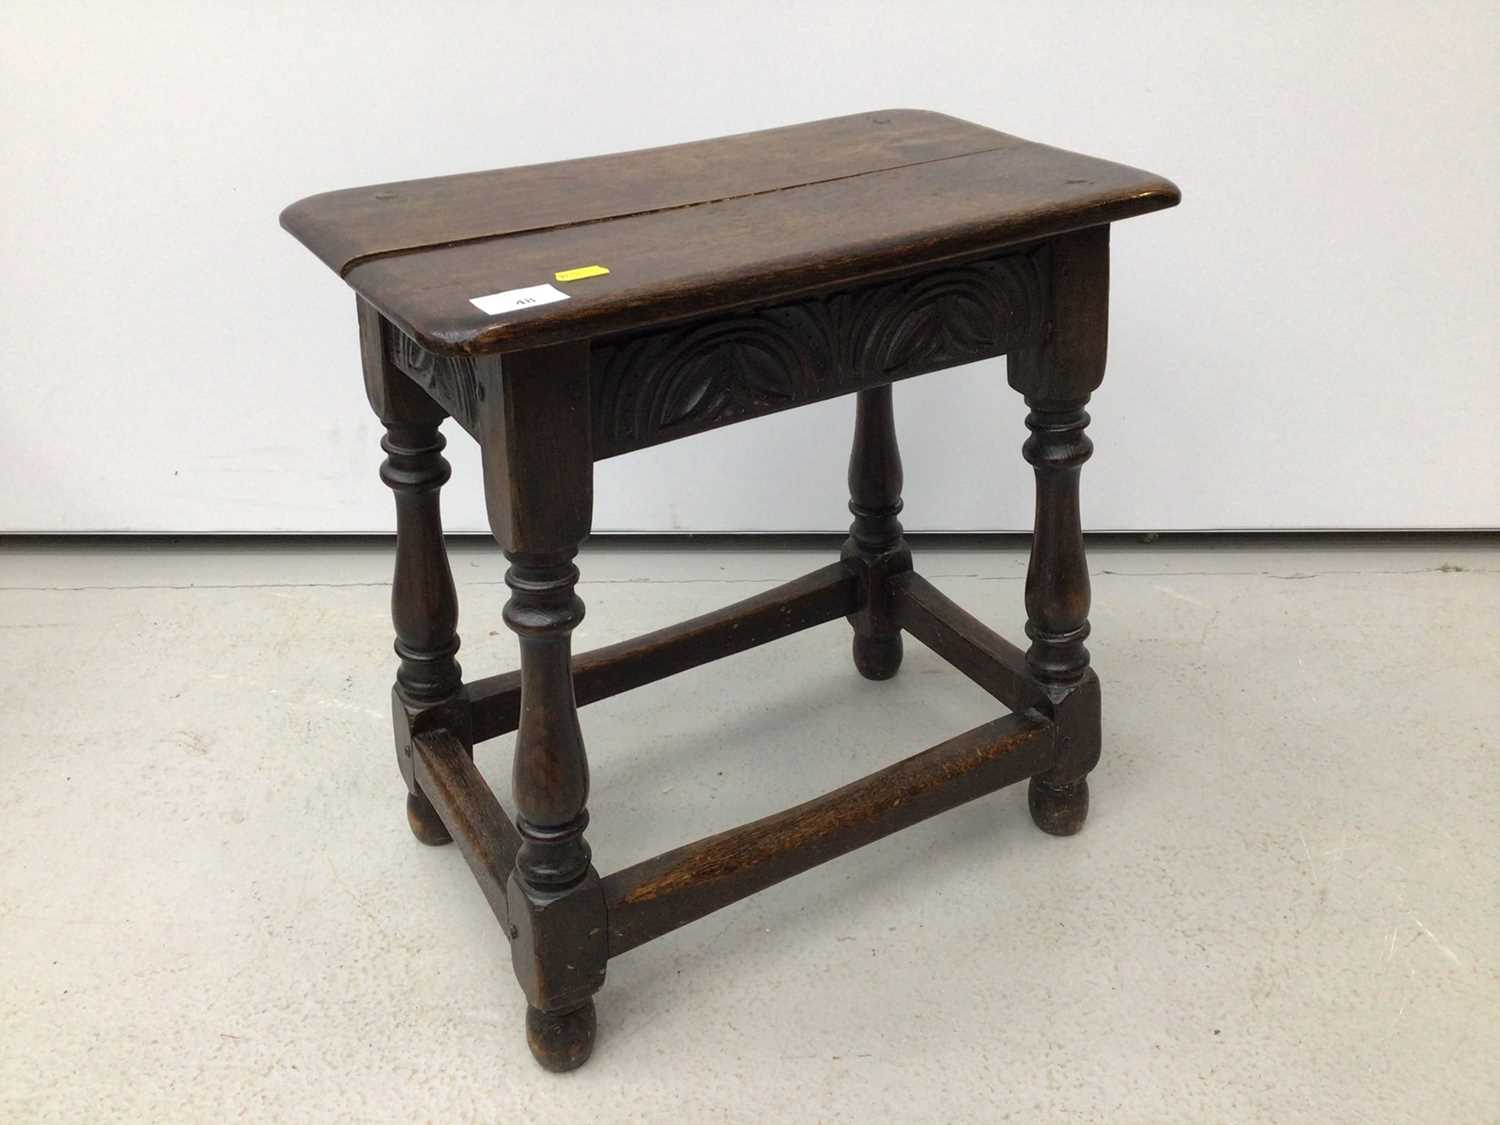 Carved oak joint stool on turned and block legs joined by stretchers, 44cm wide x 25cm deep x 45.5cm